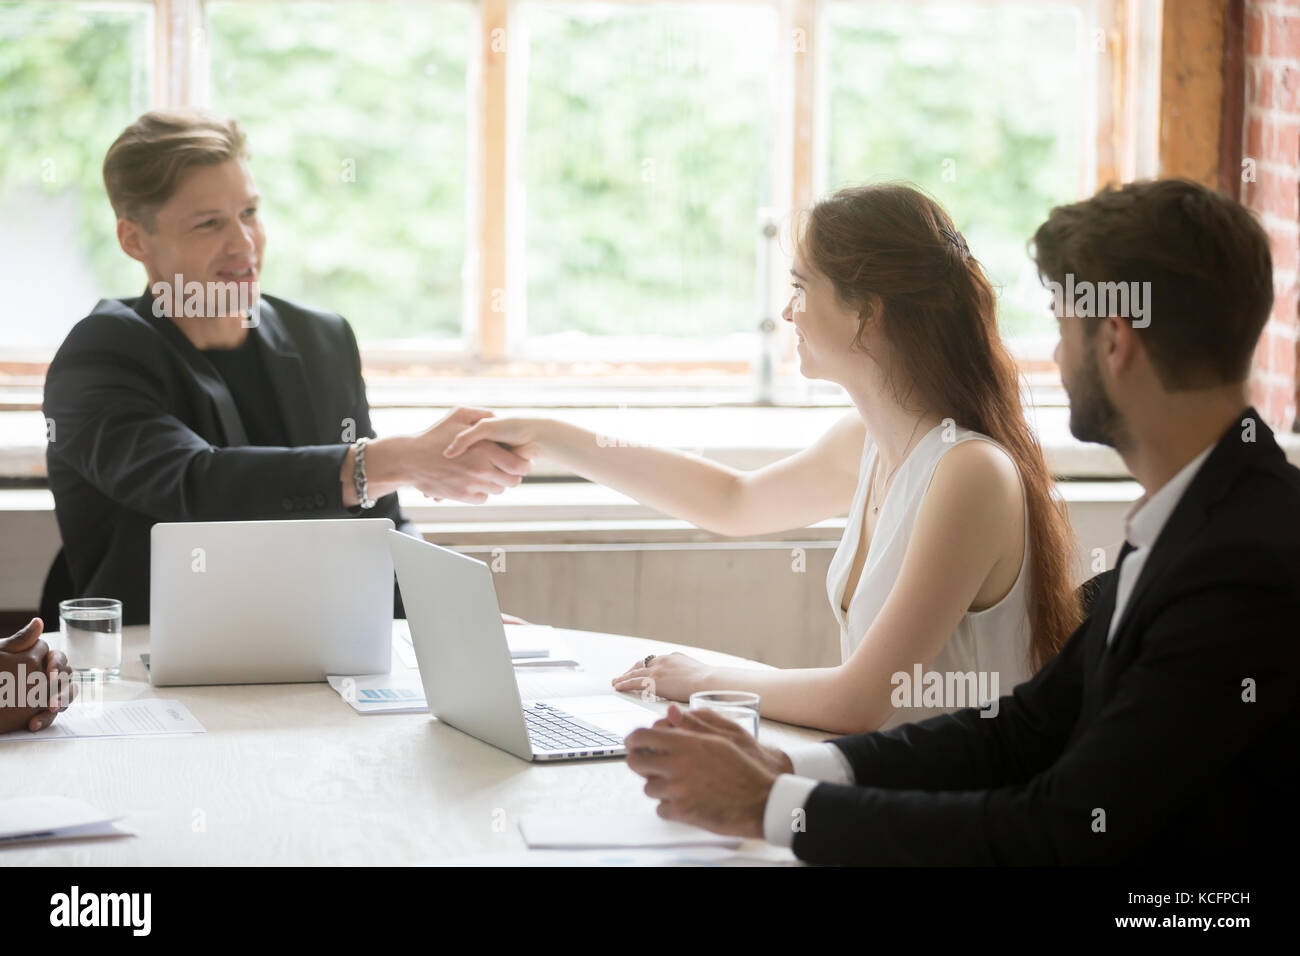 Young male executive in formal suit shaking hands with attractive female coworker. Employees greeting each other - Stock Image